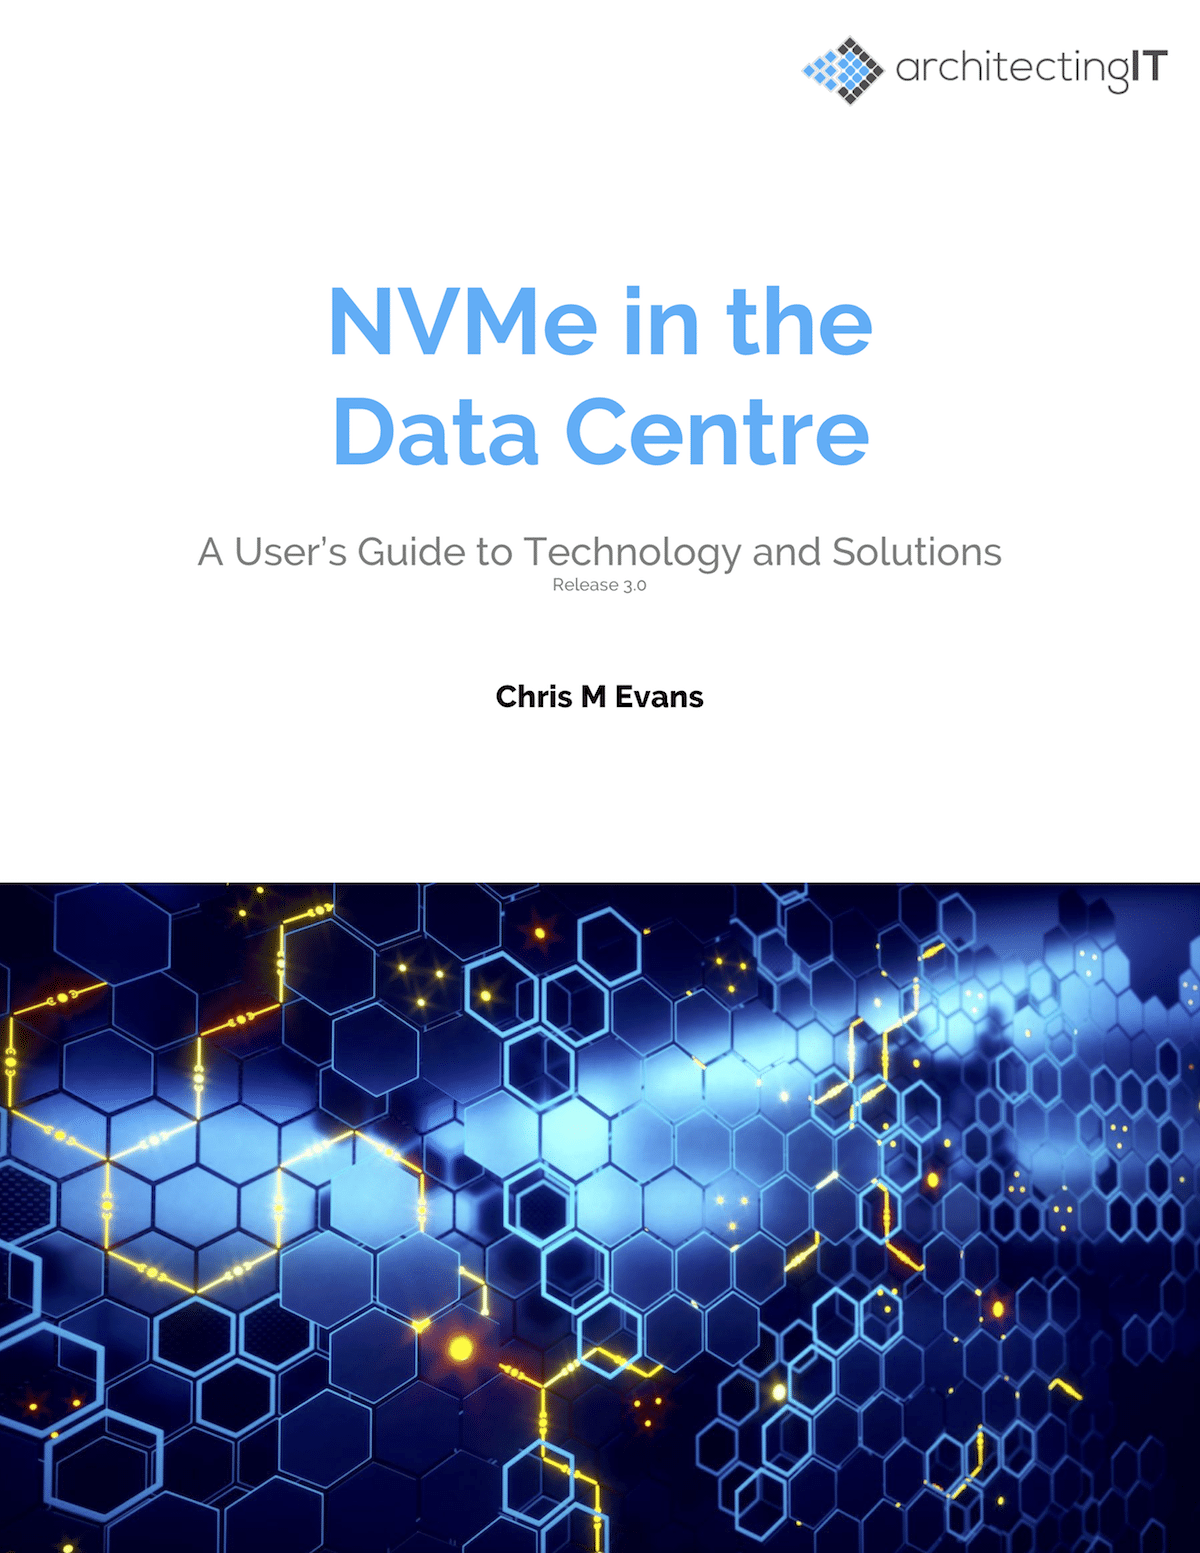 NVMe in the Data Centre 3.0 – White Paper Report